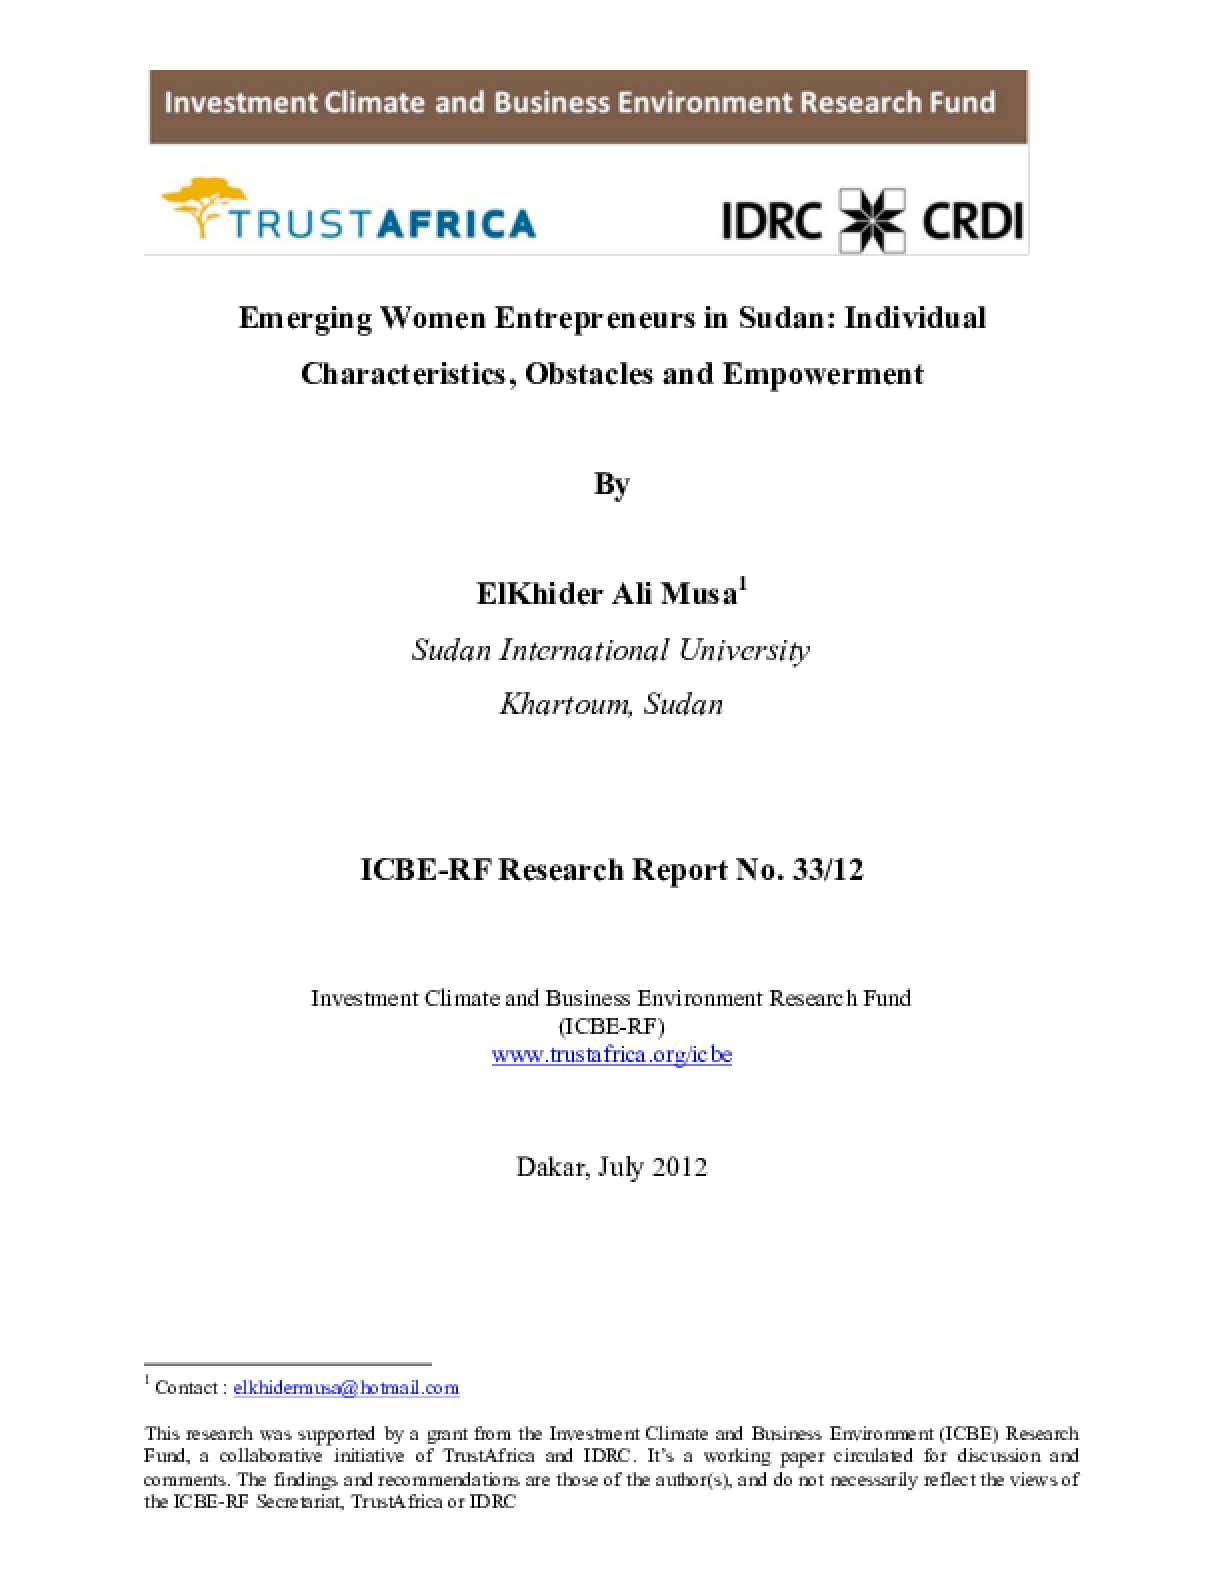 Emerging Women Entrepreneurs in Sudan: Individual Characteristics, Obstacles and Empowerment